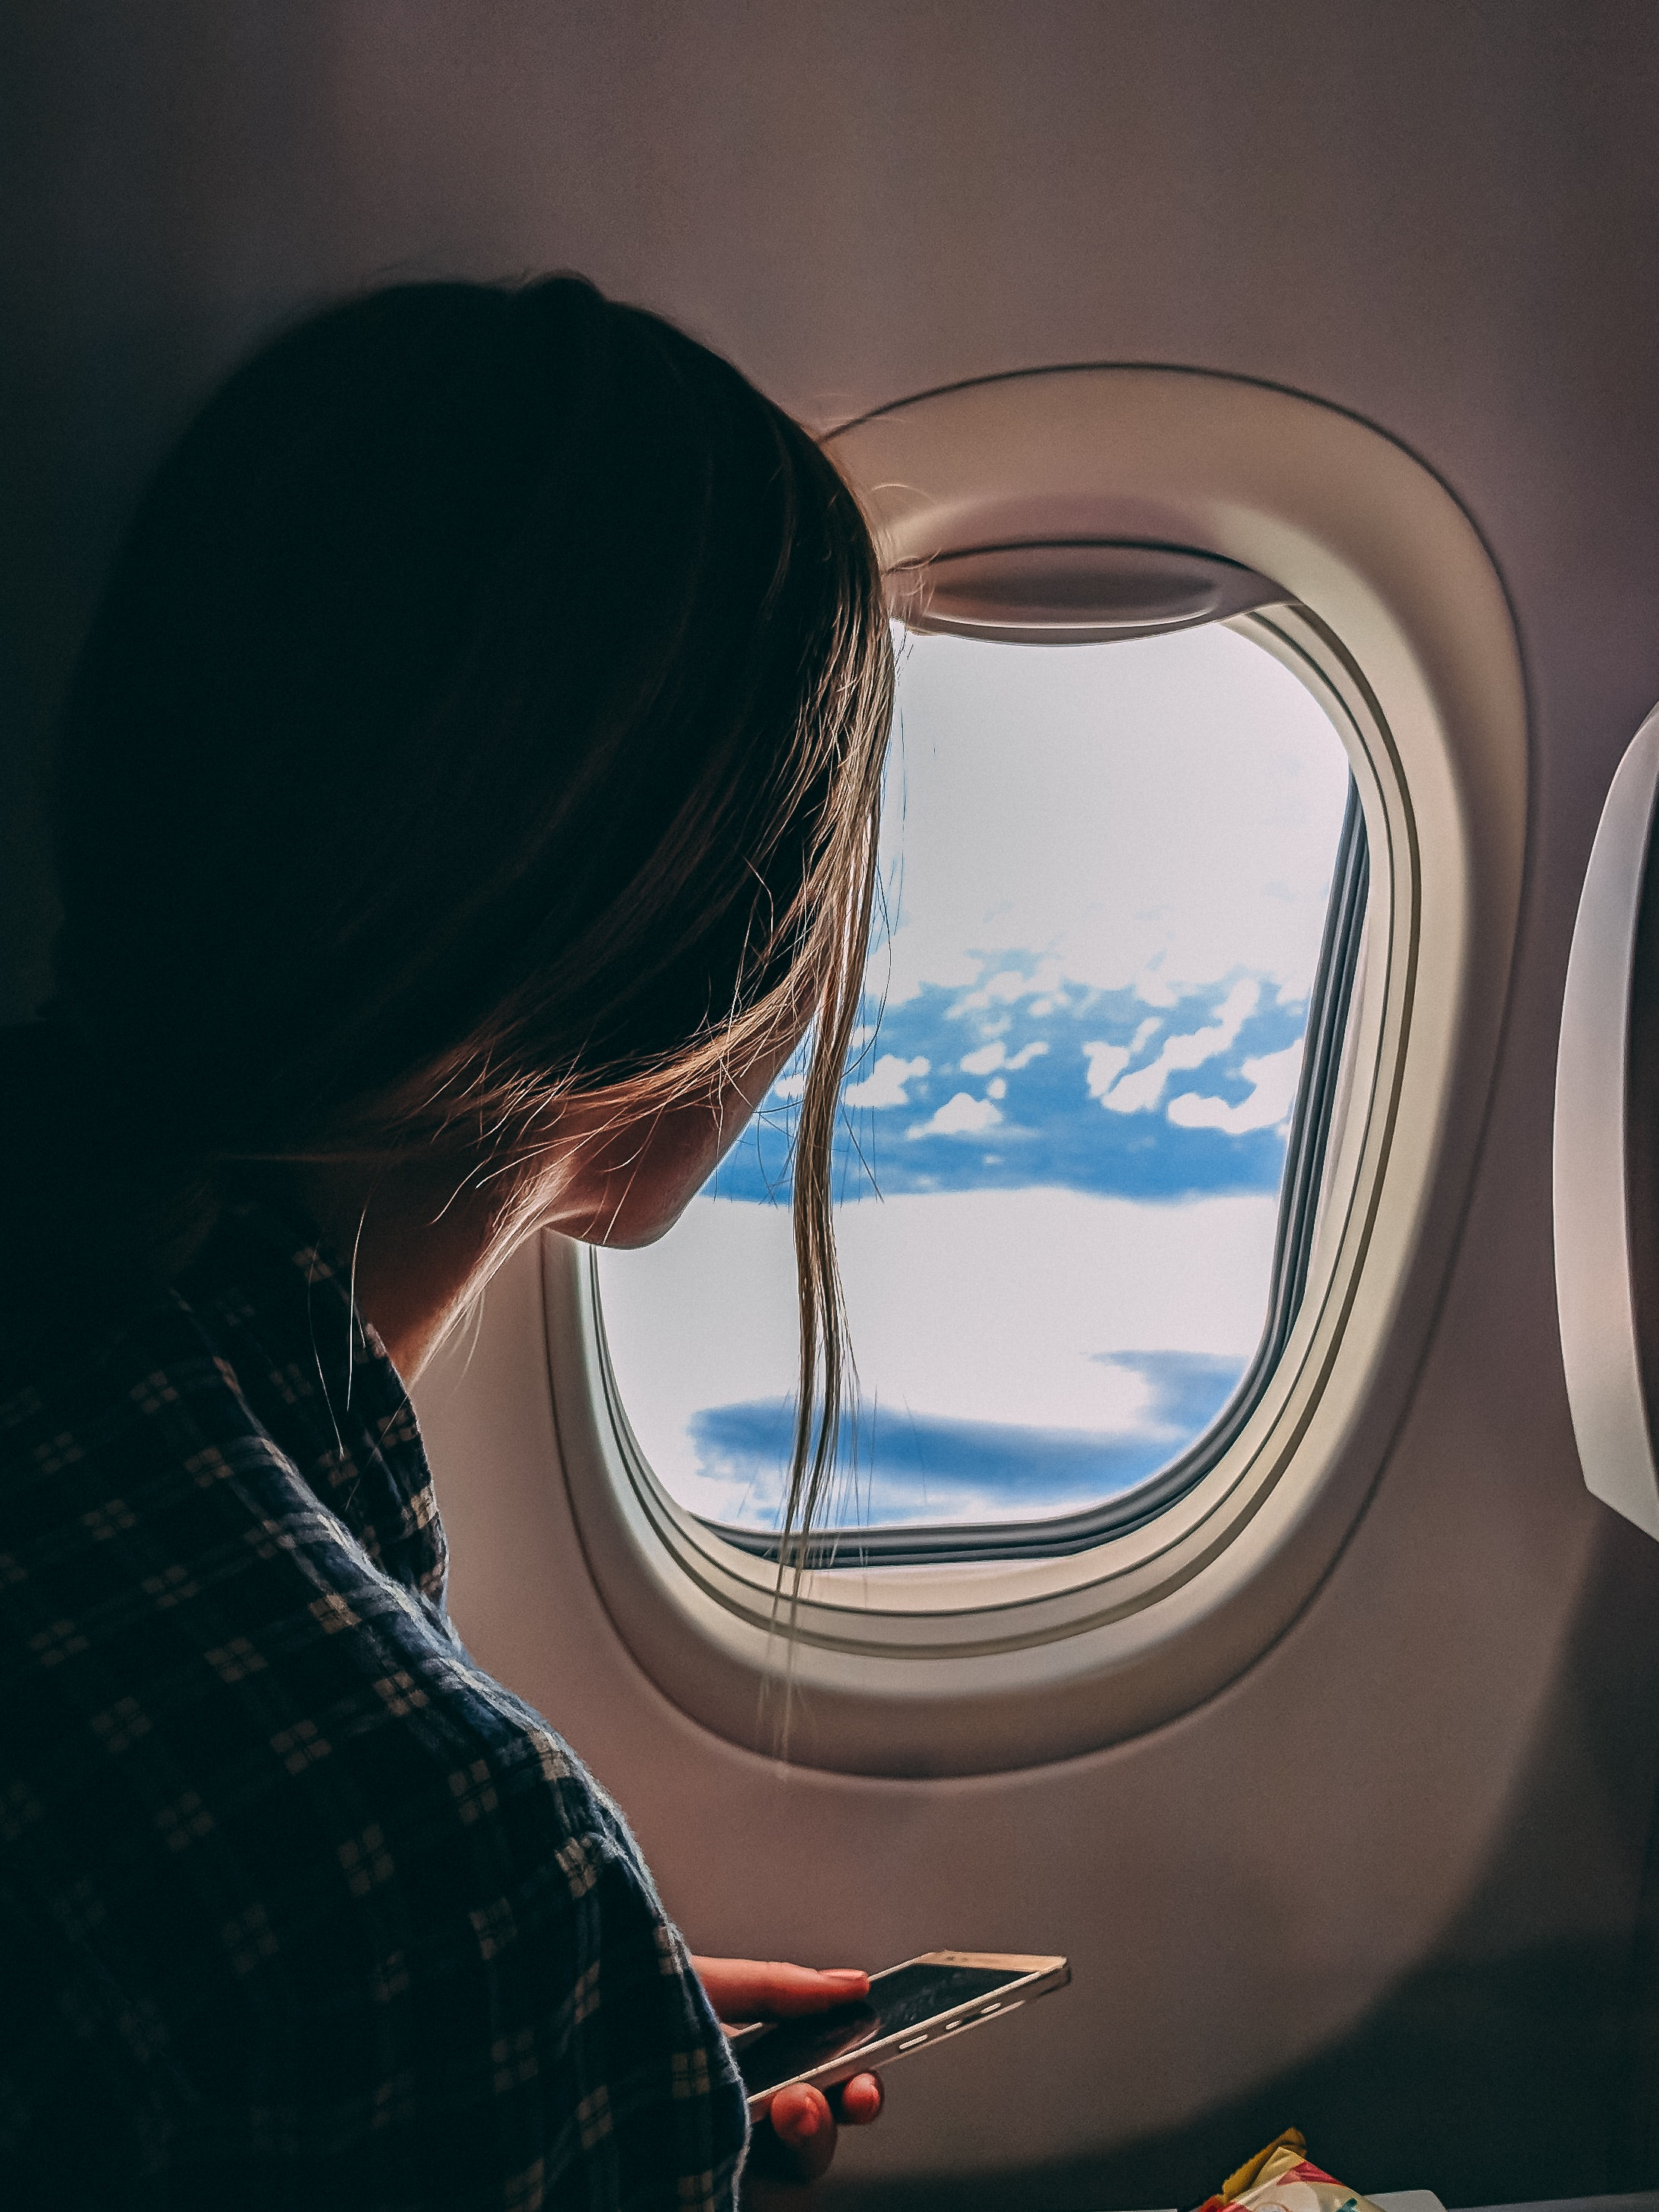 Flying can be soy-free with preparation - IMAGE VIA PEXELS